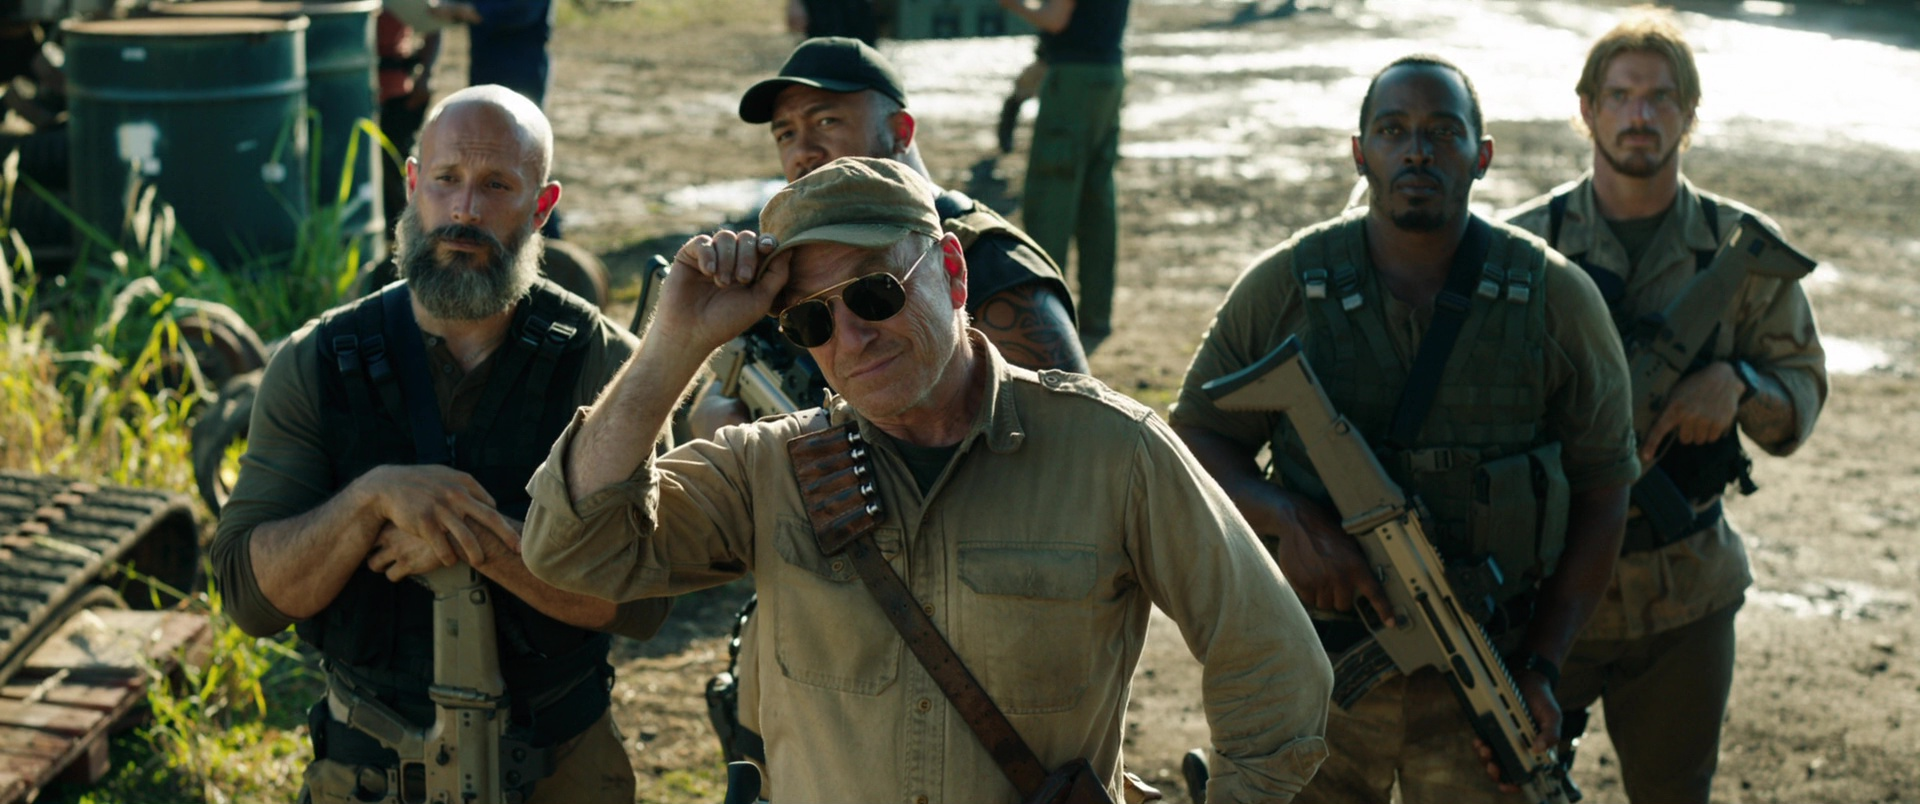 Ray Ban Sunglasses Worn By Ted Levine In Jurassic World